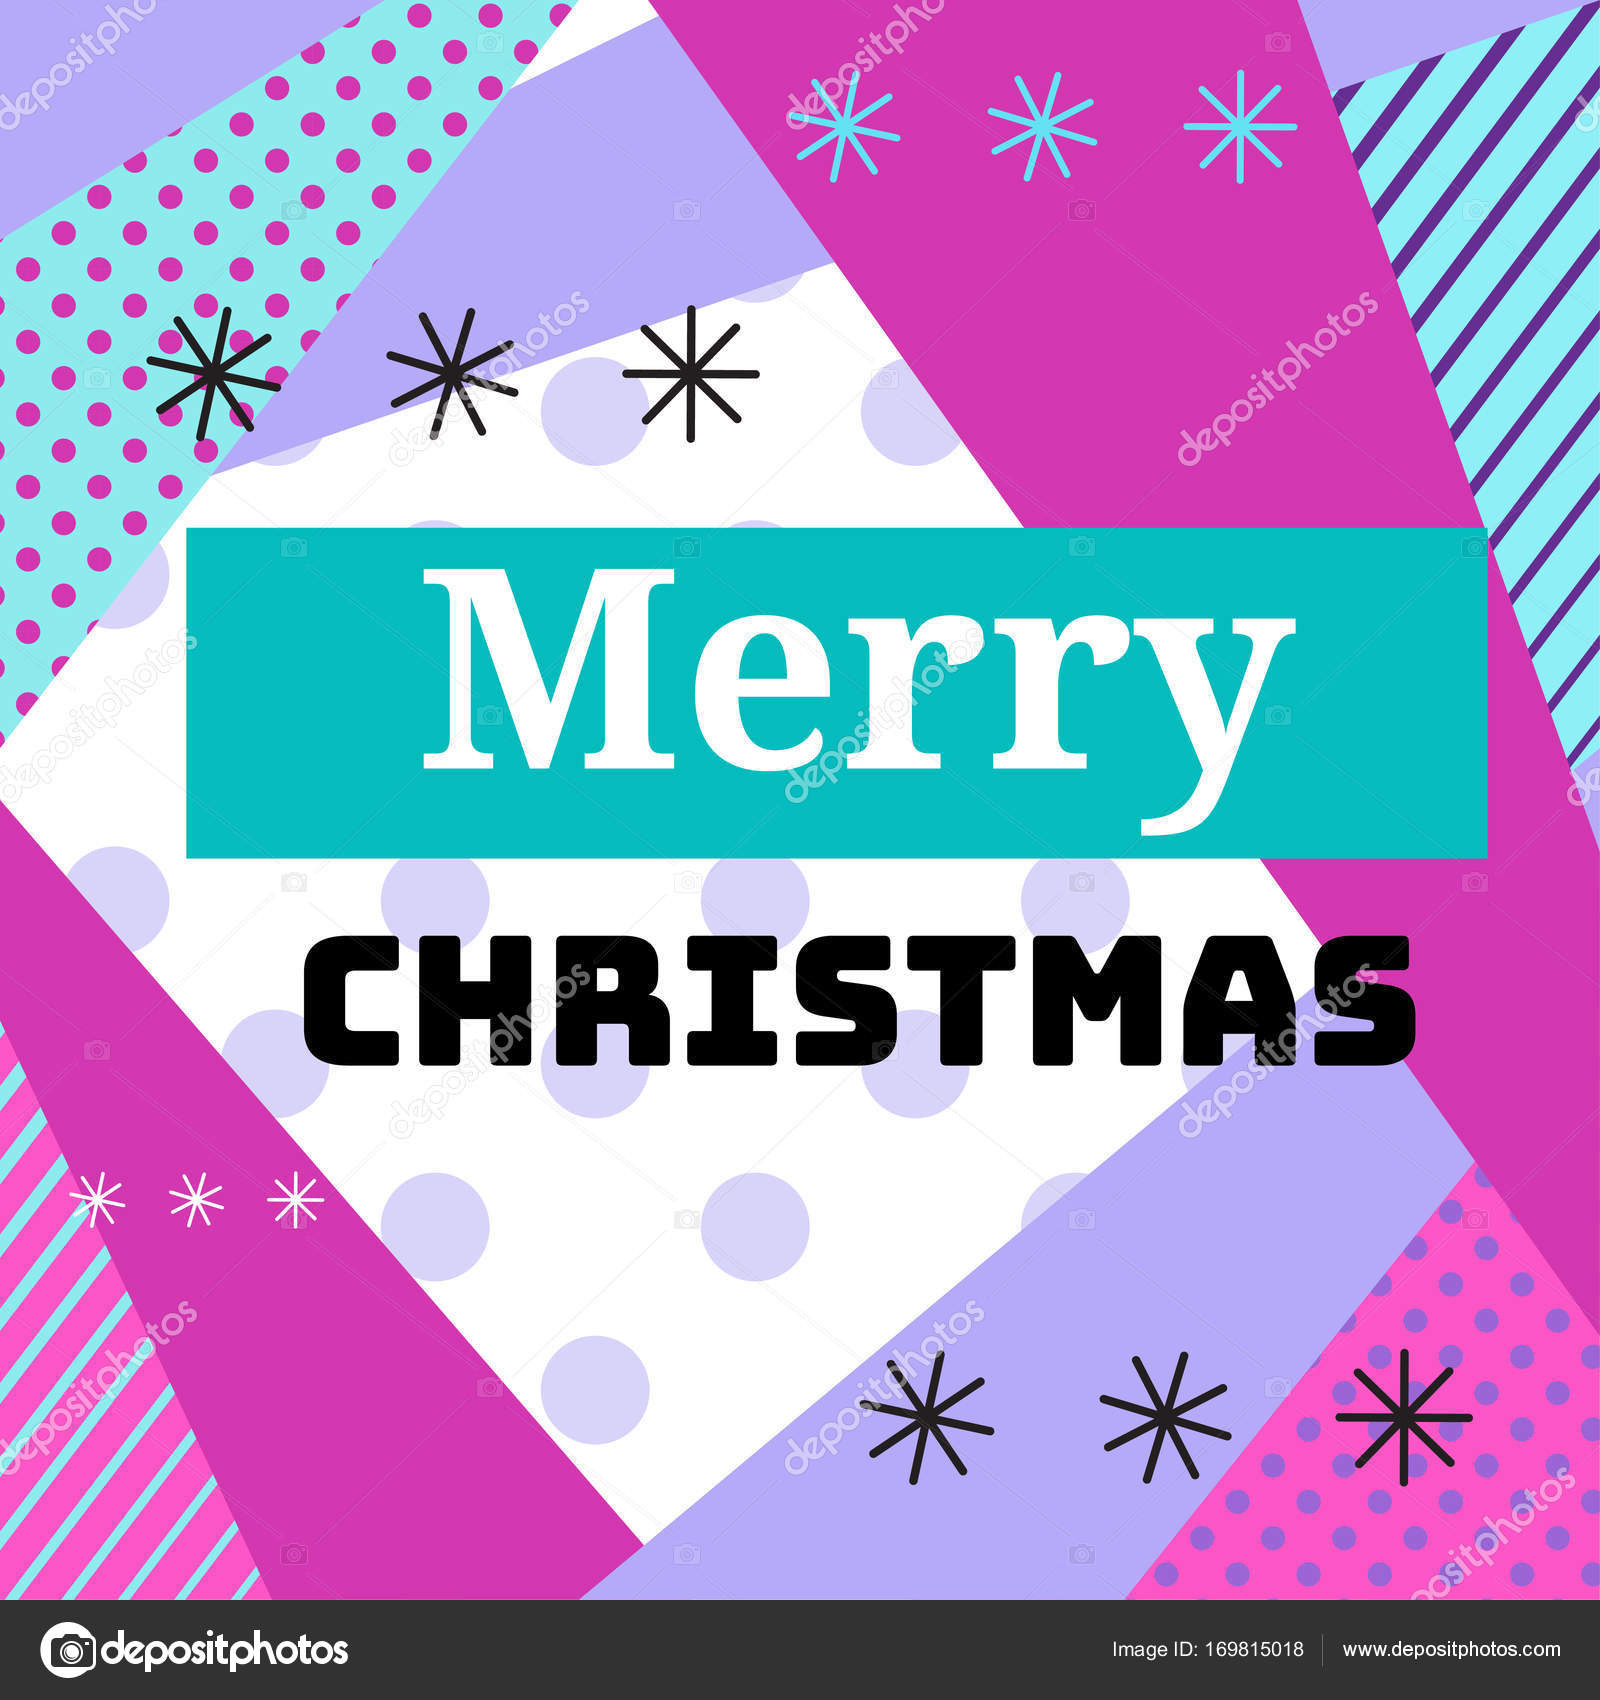 Merry christmas geometric greeting card in trendy memphis 90s style merry christmas geometric greeting card in trendy memphis 90s style with triangles lines text m4hsunfo